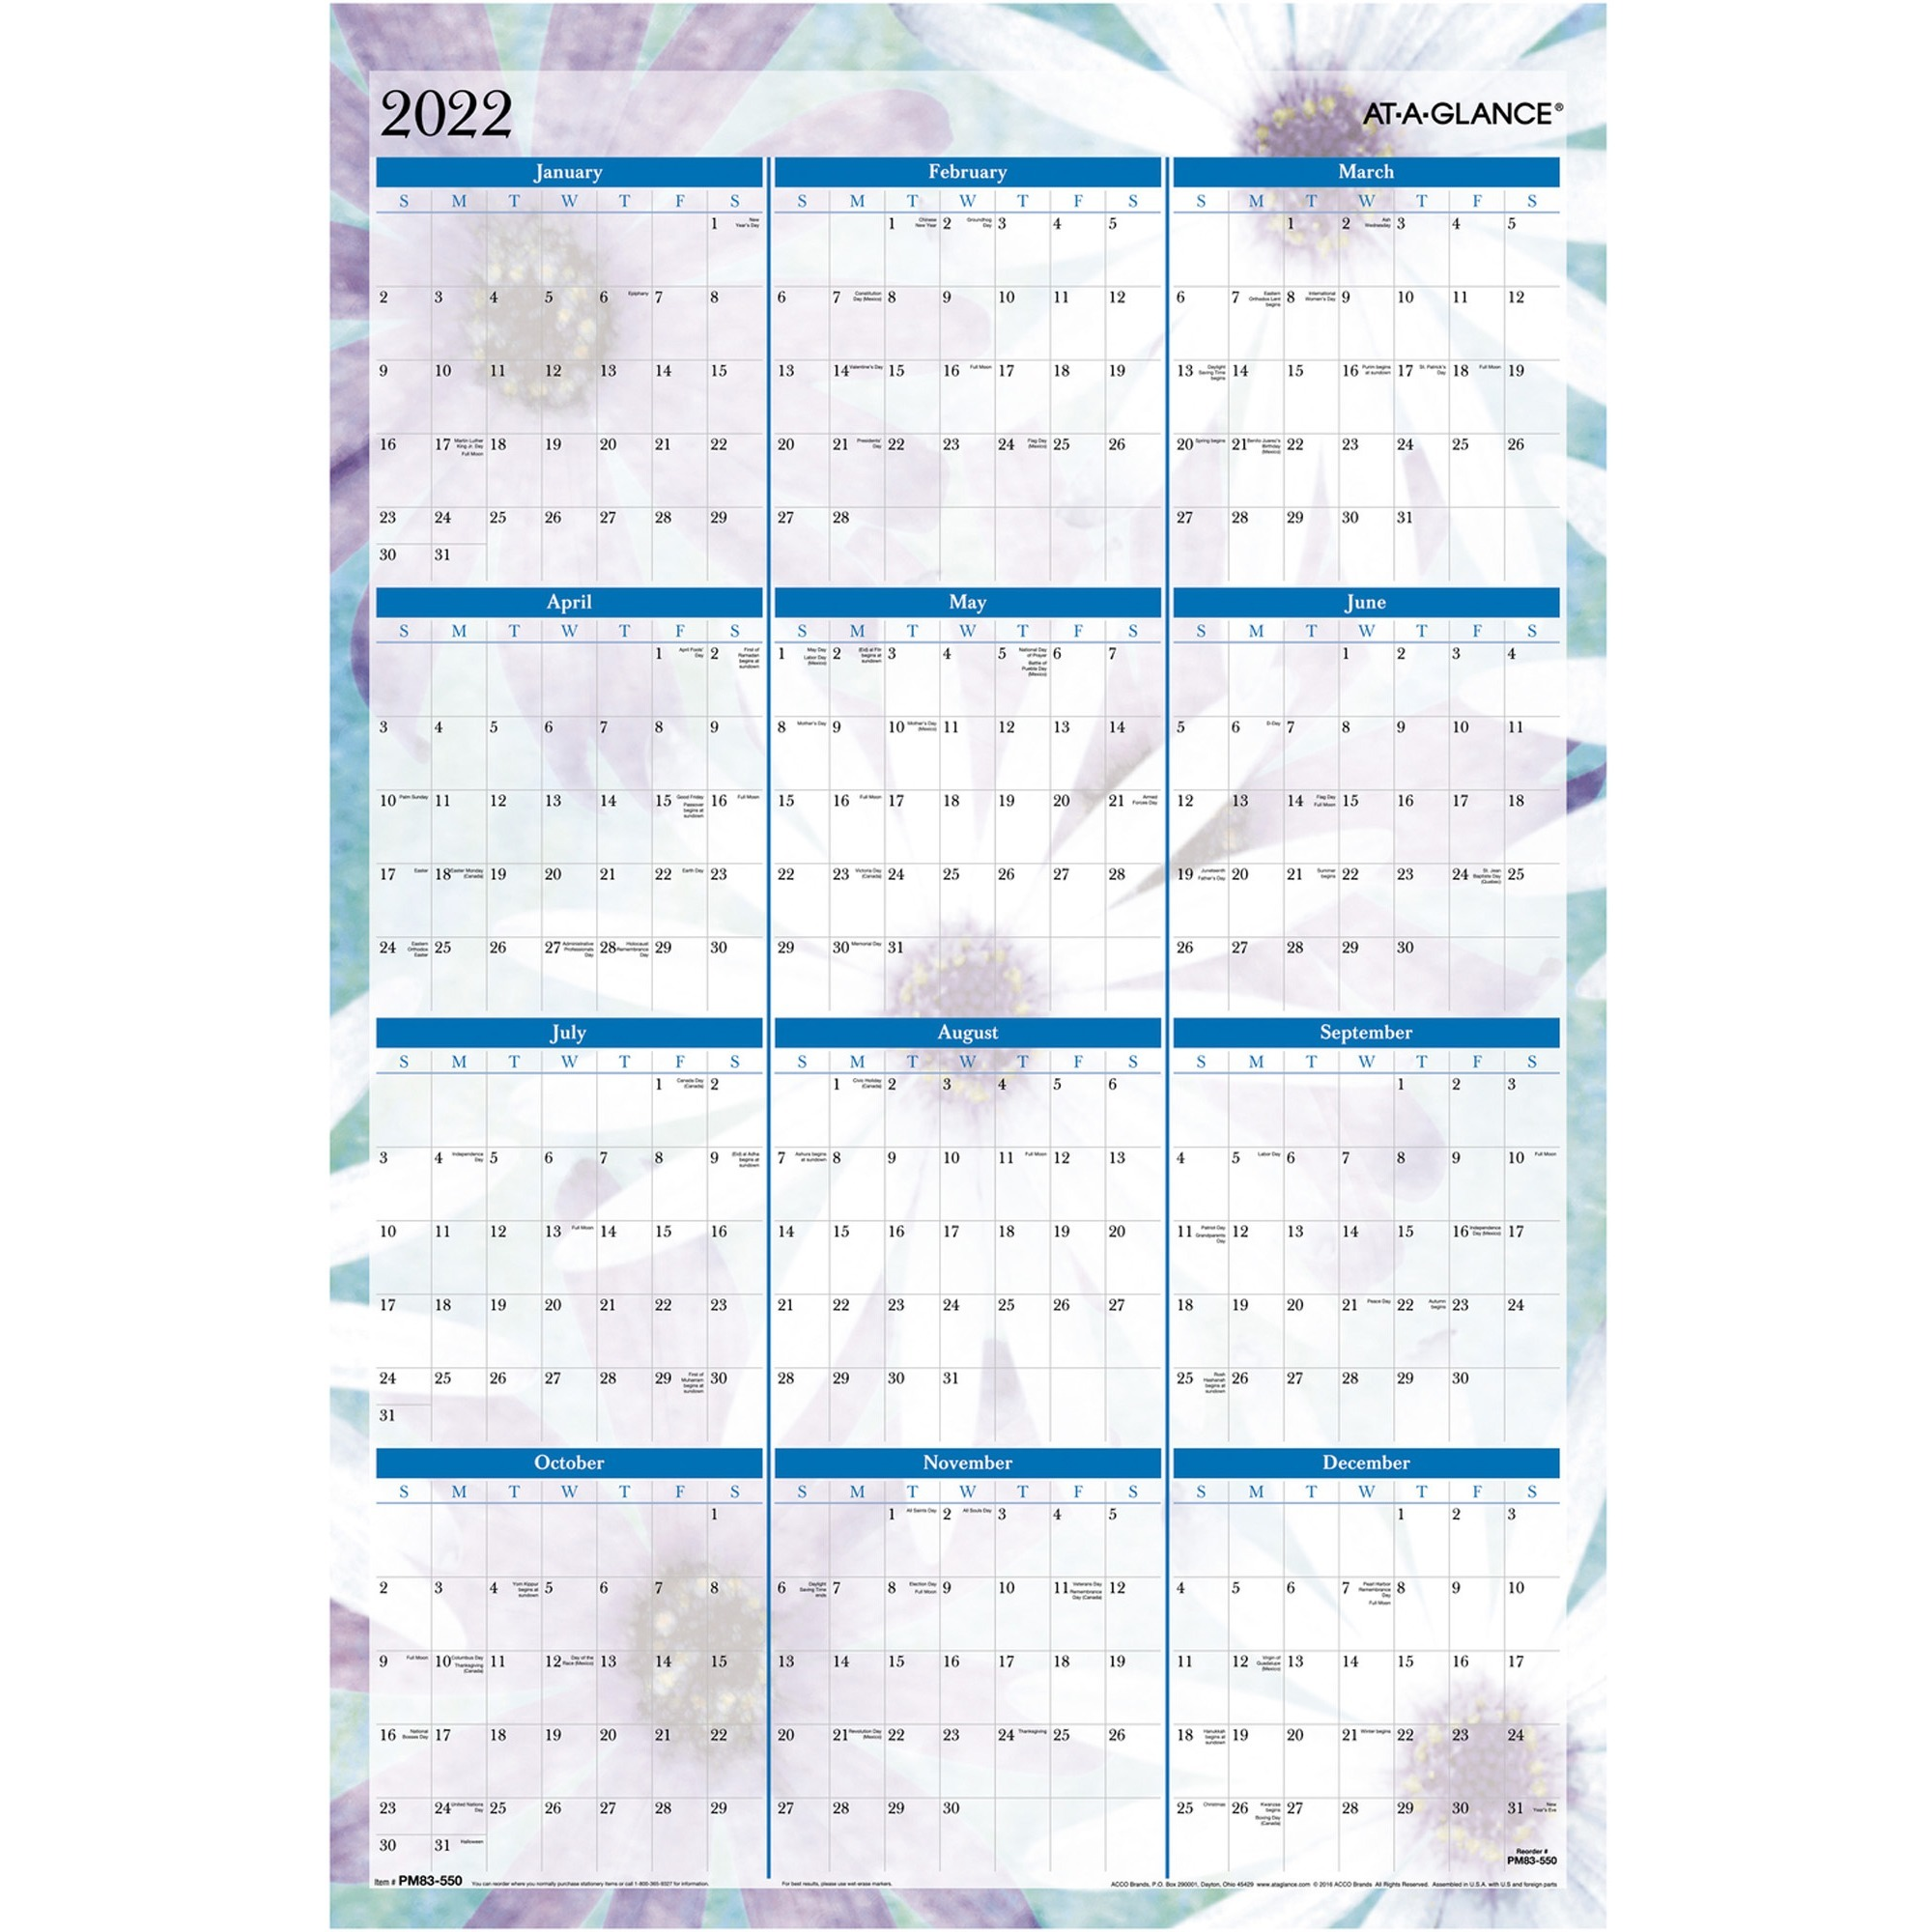 At-A-Glance Dreams Erasable Wall Planner - Yes - Monthly - January 2020 till December 2020 - 24